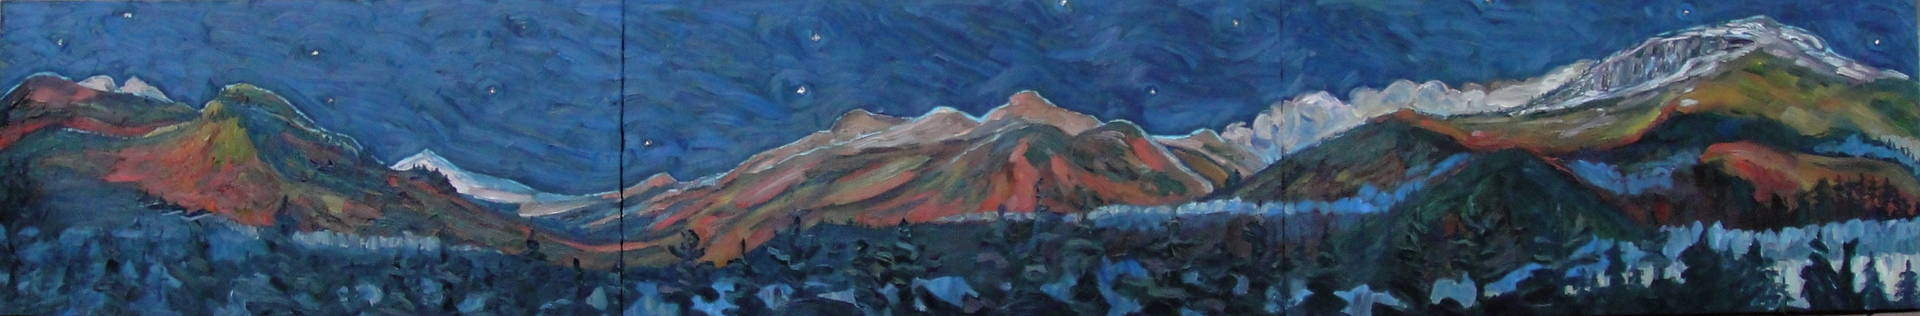 Oil painting October Moonrise by Edward Miller